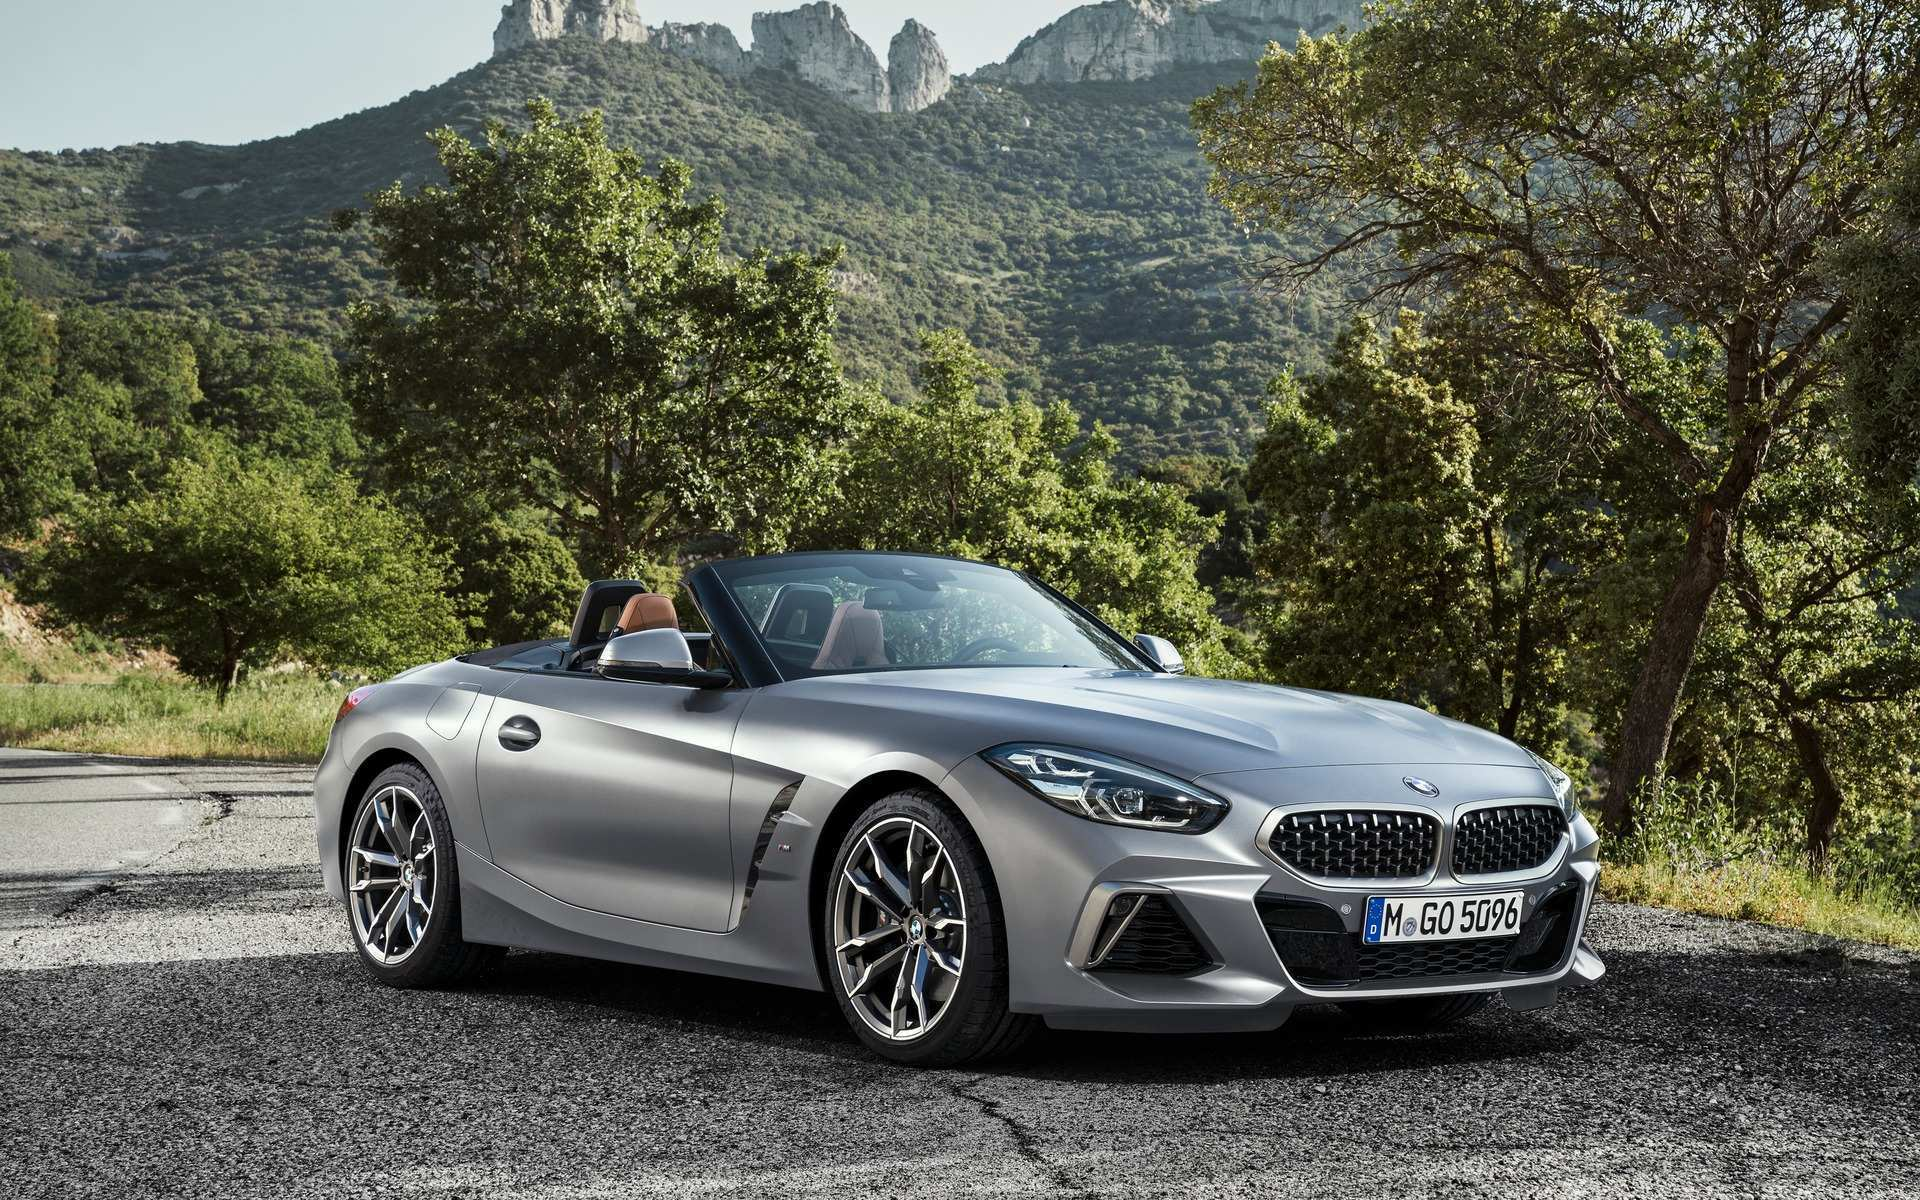 66 New 2019 Bmw Roadster Model for 2019 Bmw Roadster